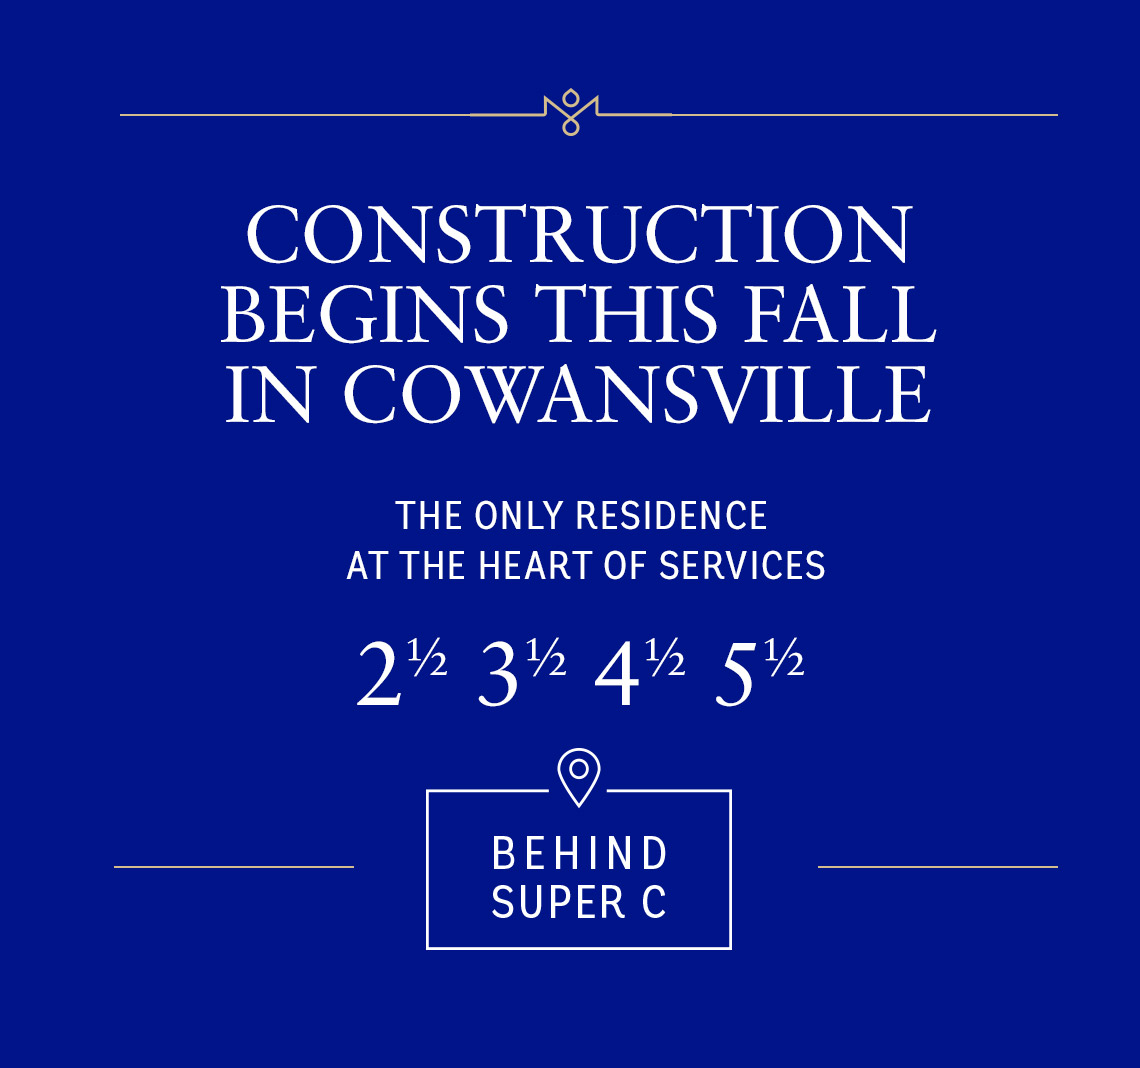 Construction begins this fall in cowansville